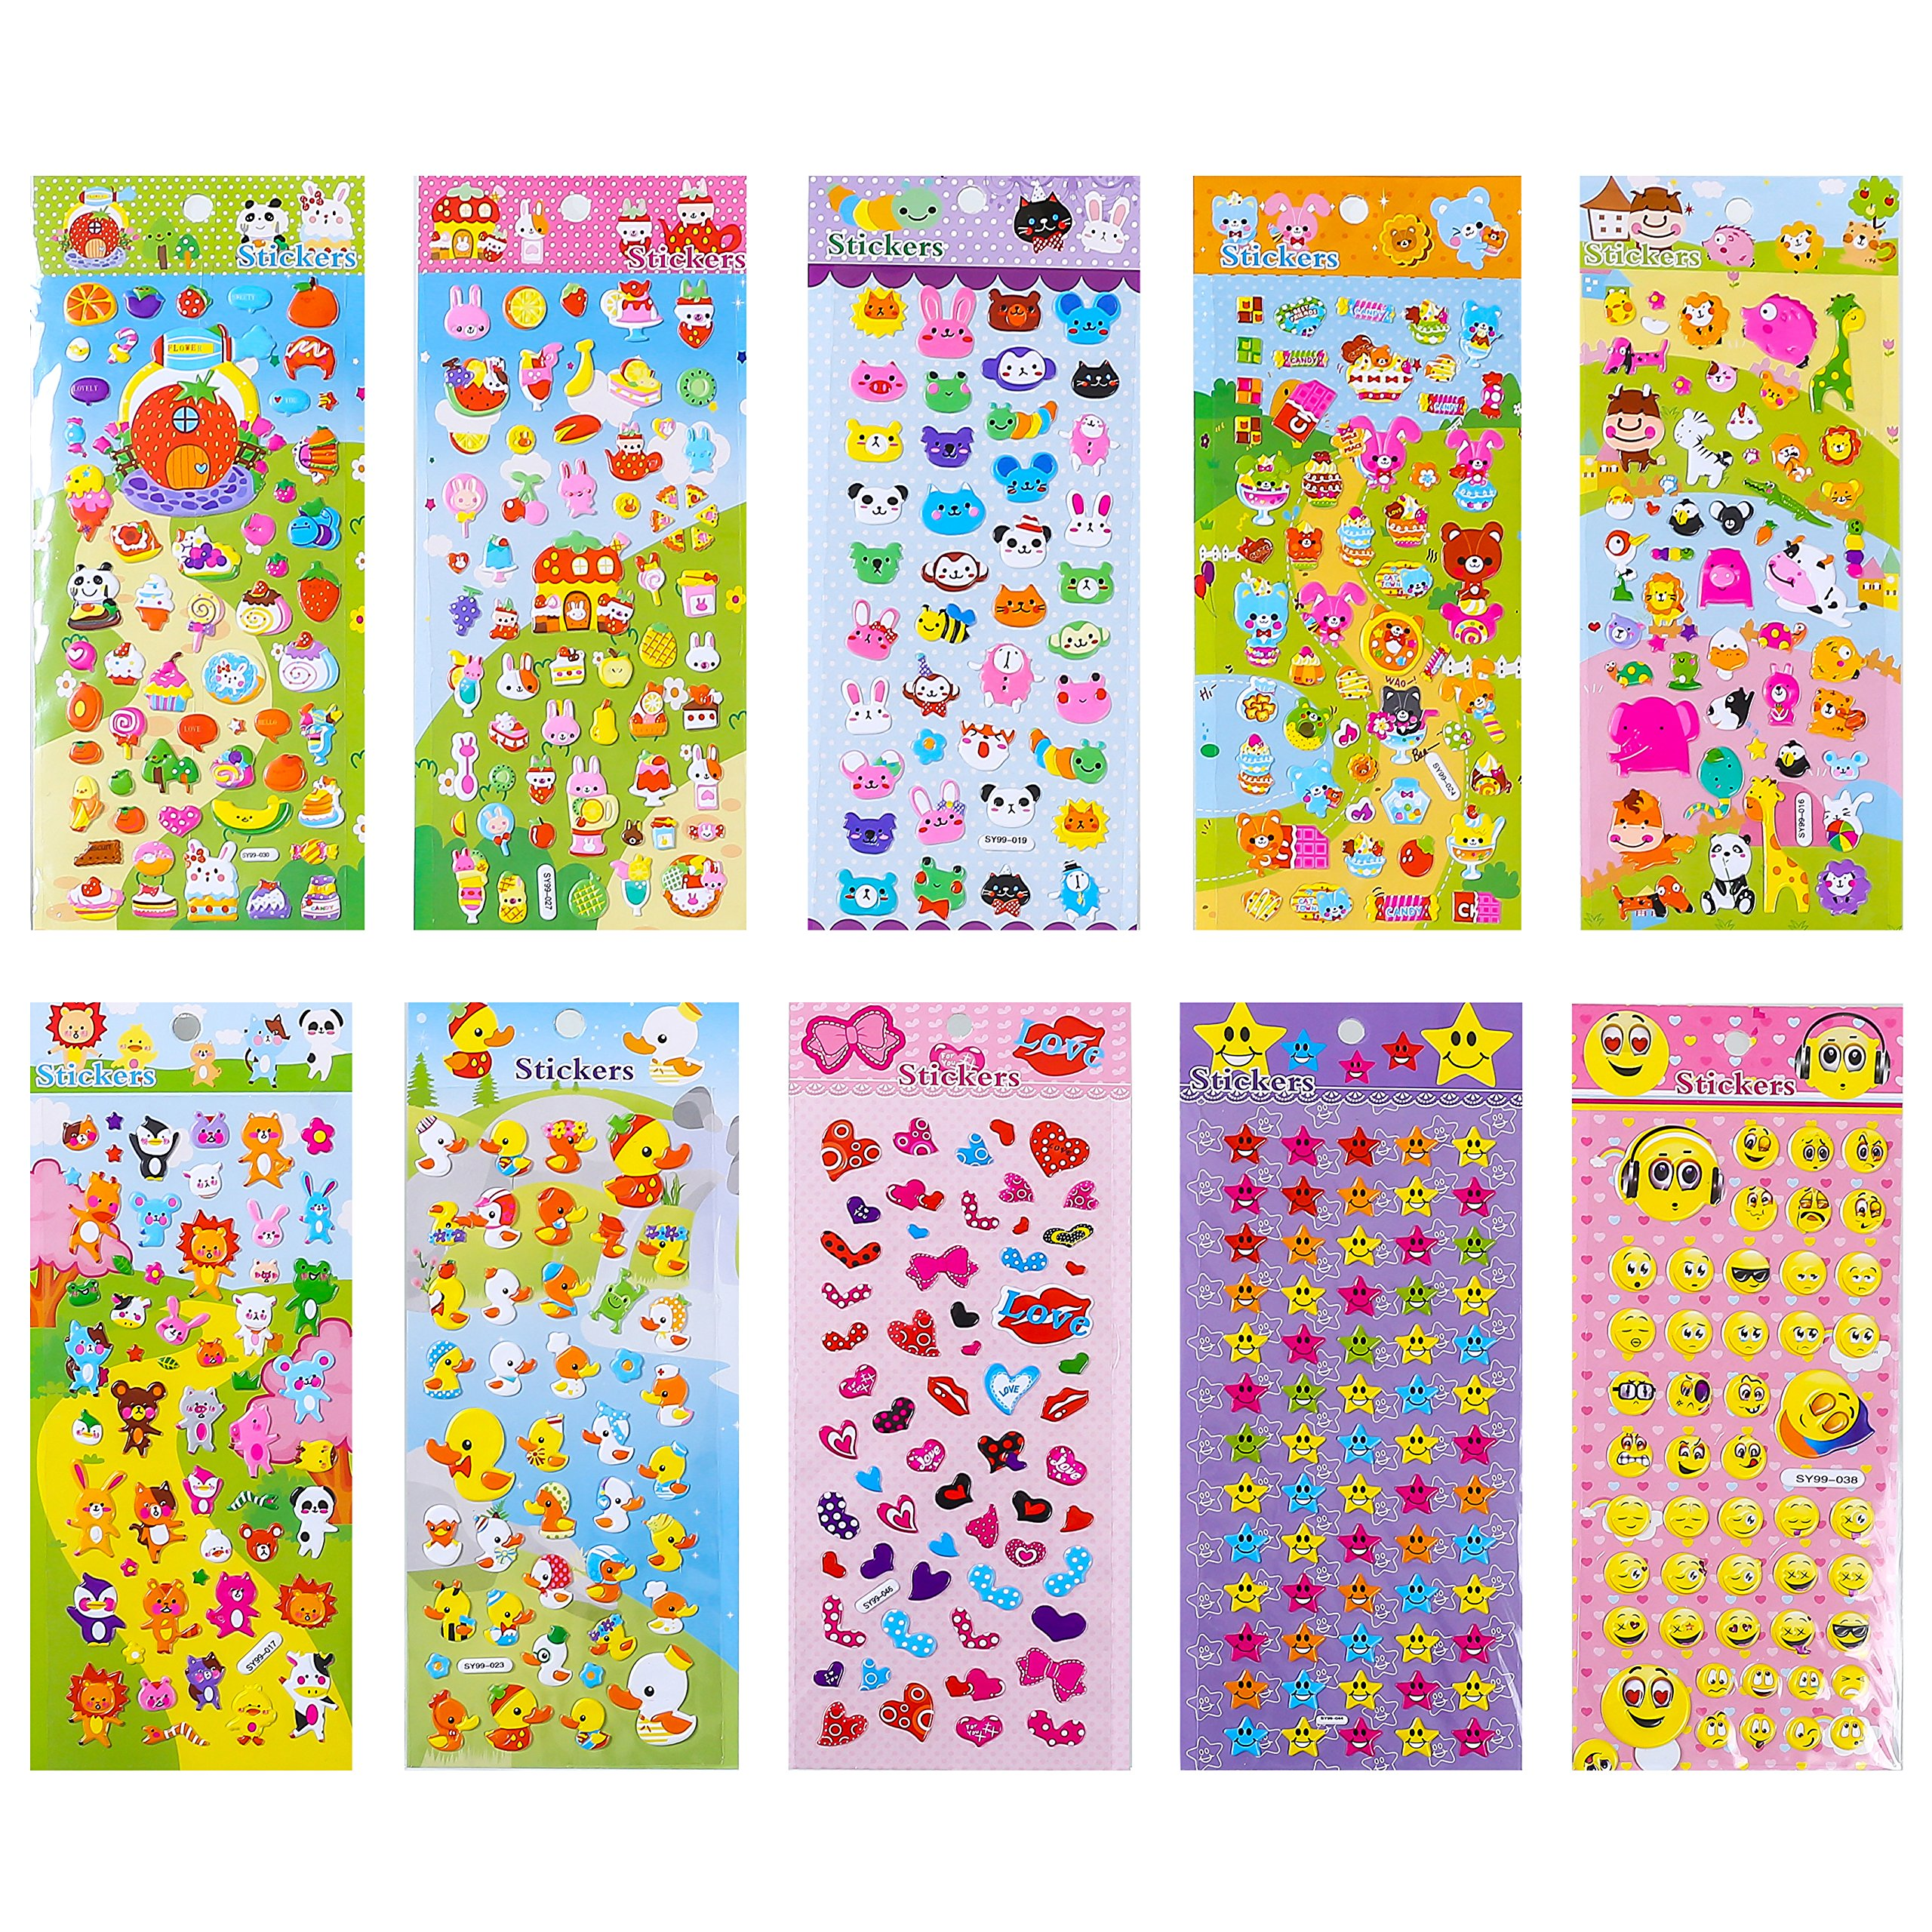 Stickers 1000 + and 20 Different Scenes , 3D Puffy Stickers, Year-Round Sticker Bulk Pack for Teachers School,Students, Toddlers,Scrapbooking, Girl Boy Birthday Present Gift, Including cars and more